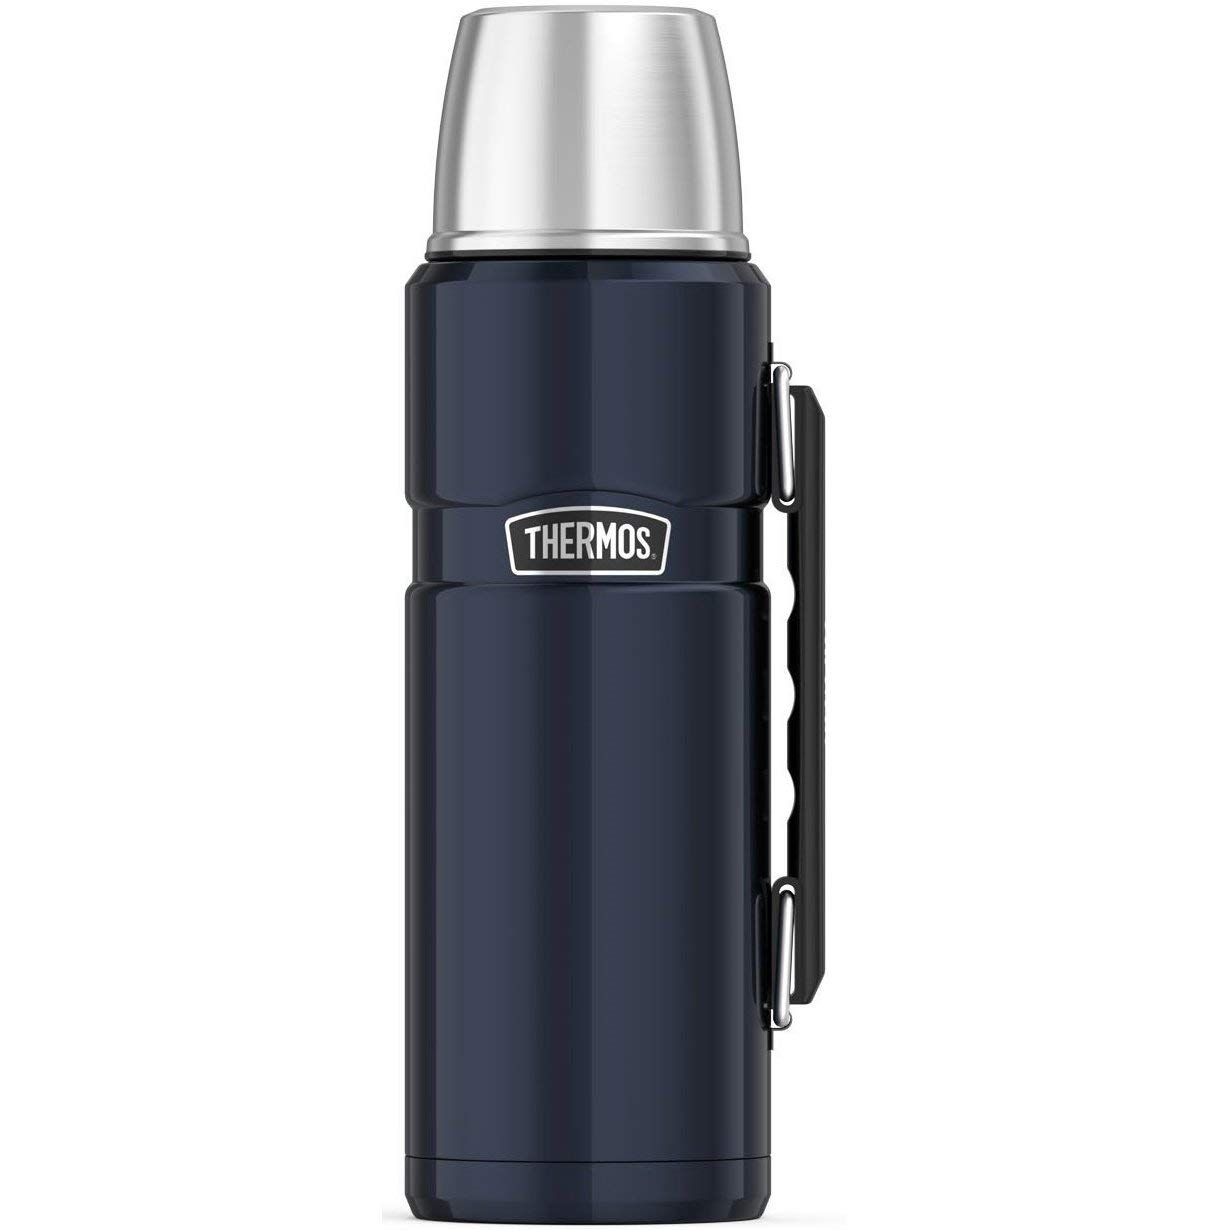 Thermos Stainless King 40 Ounce Beverage Bottle -